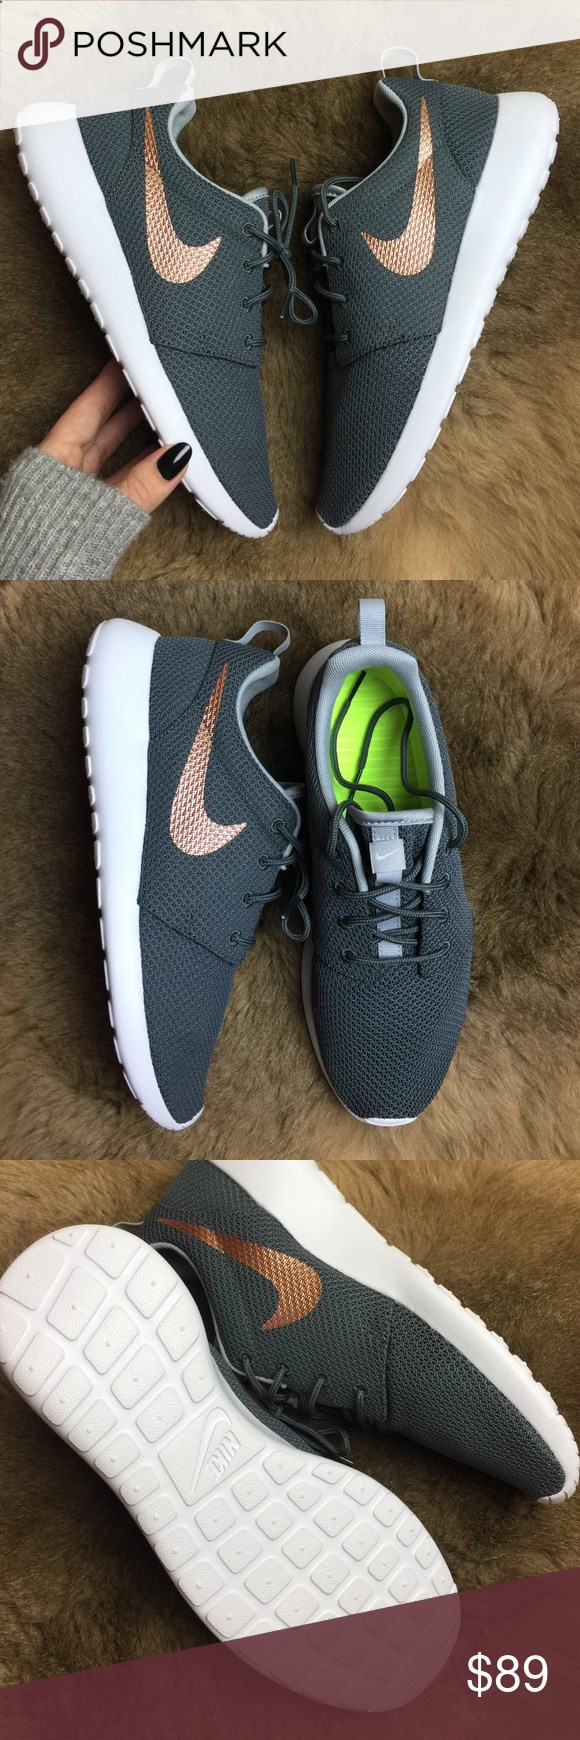 65b7b725a1a15 NWT Nike ID custom rose gold swoosh Brand new no box Nike id roshe custom  grey wolf color with rose gold swoosh! No trades!price is firm!